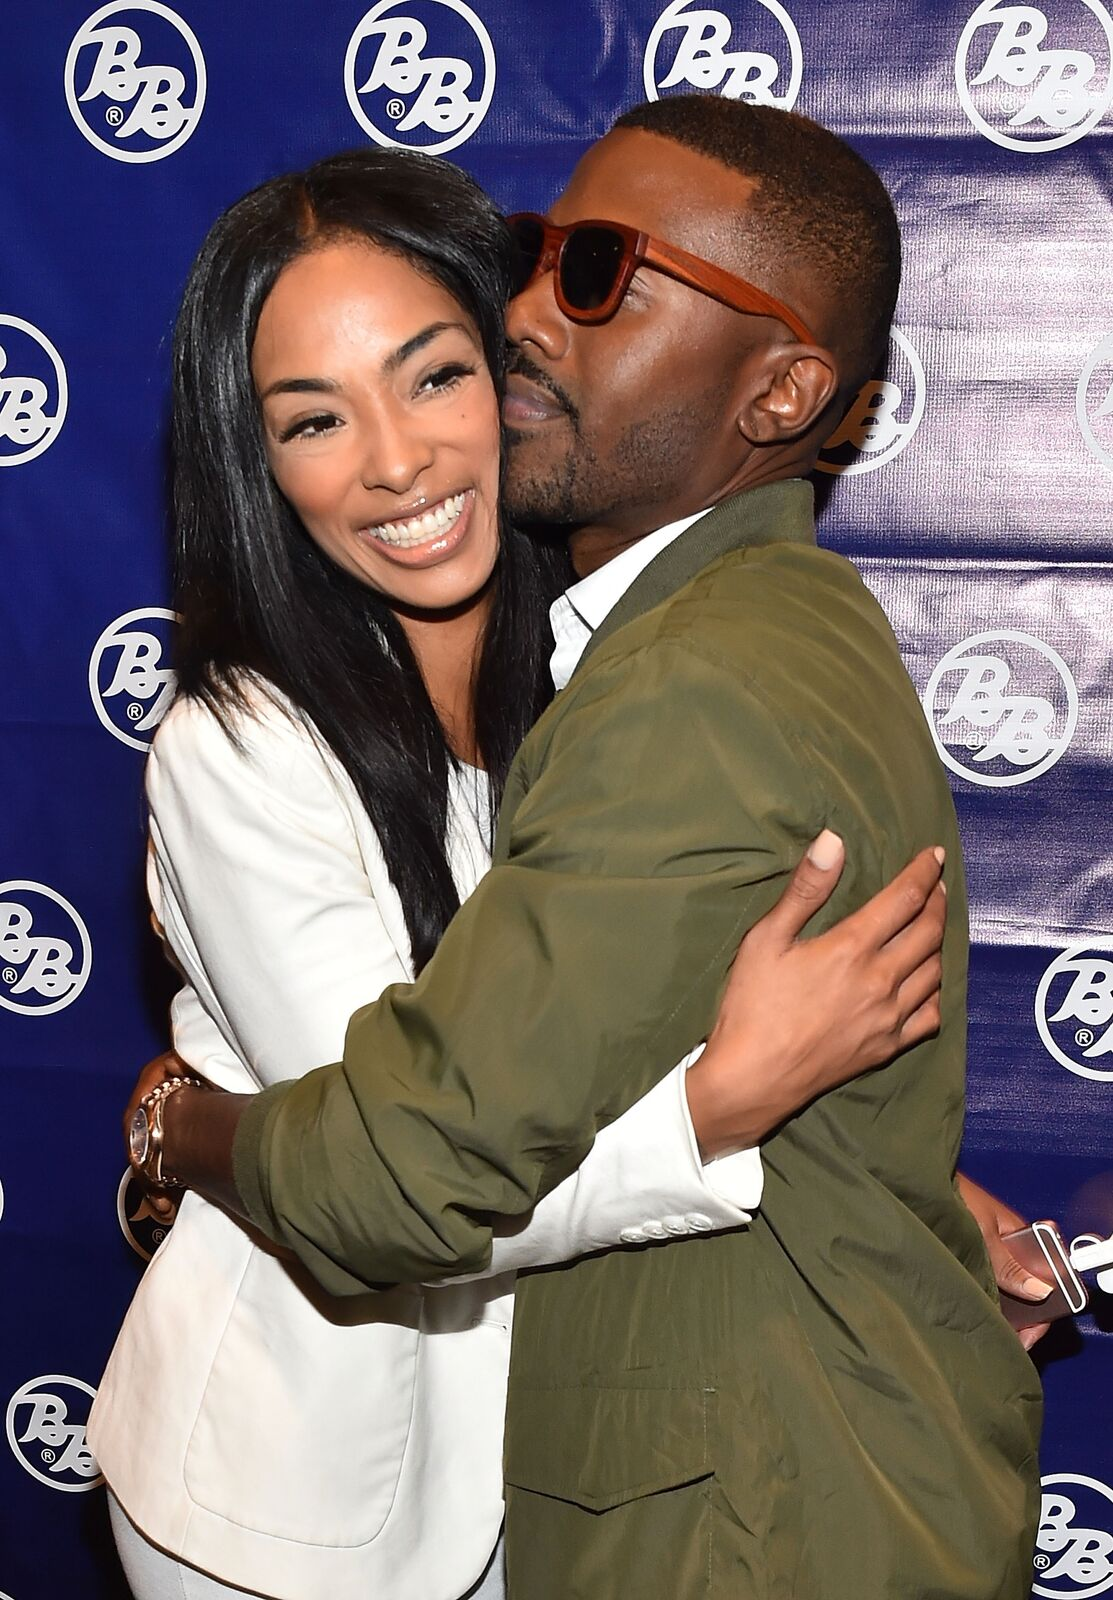 Princess Love and Ray J attend Bronner Brothers International Beauty Show at Georgia World Congress Center on August 21, 2016. | Source: Getty Images